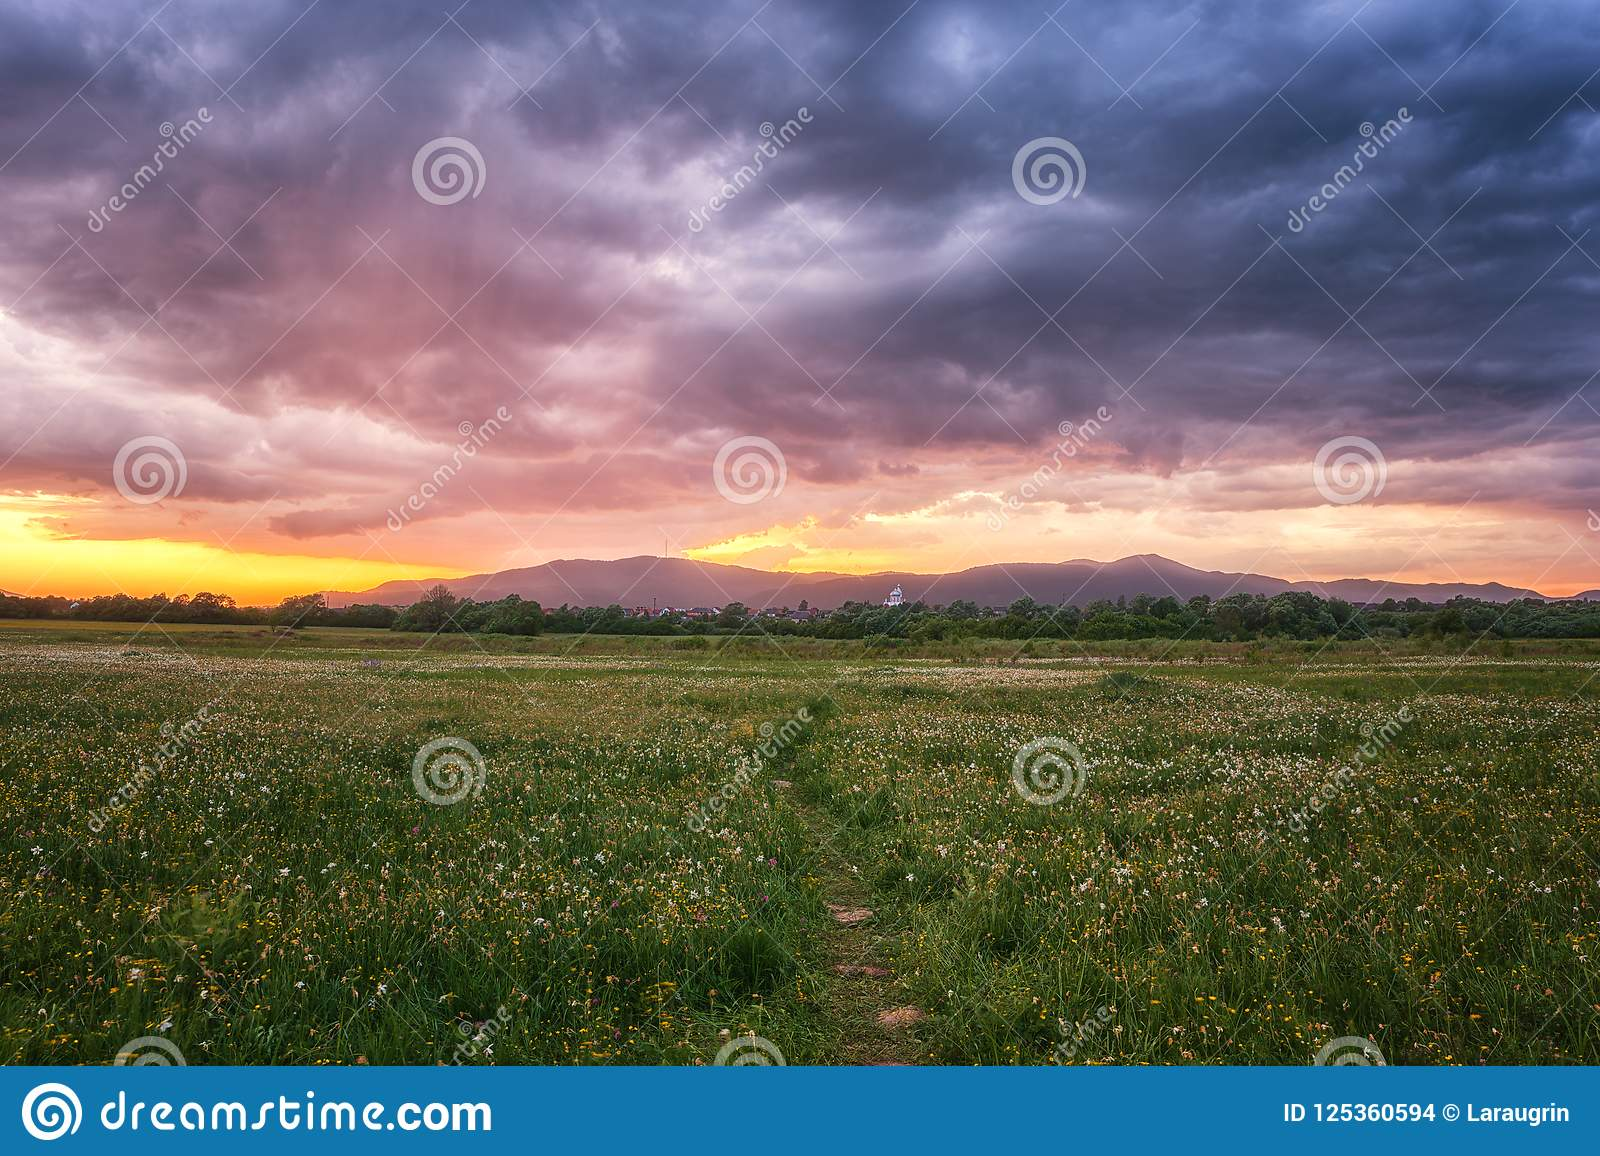 Beautiful sunset in the flowering valley, scenic landscape with wild growing flowers and color cloudy sky